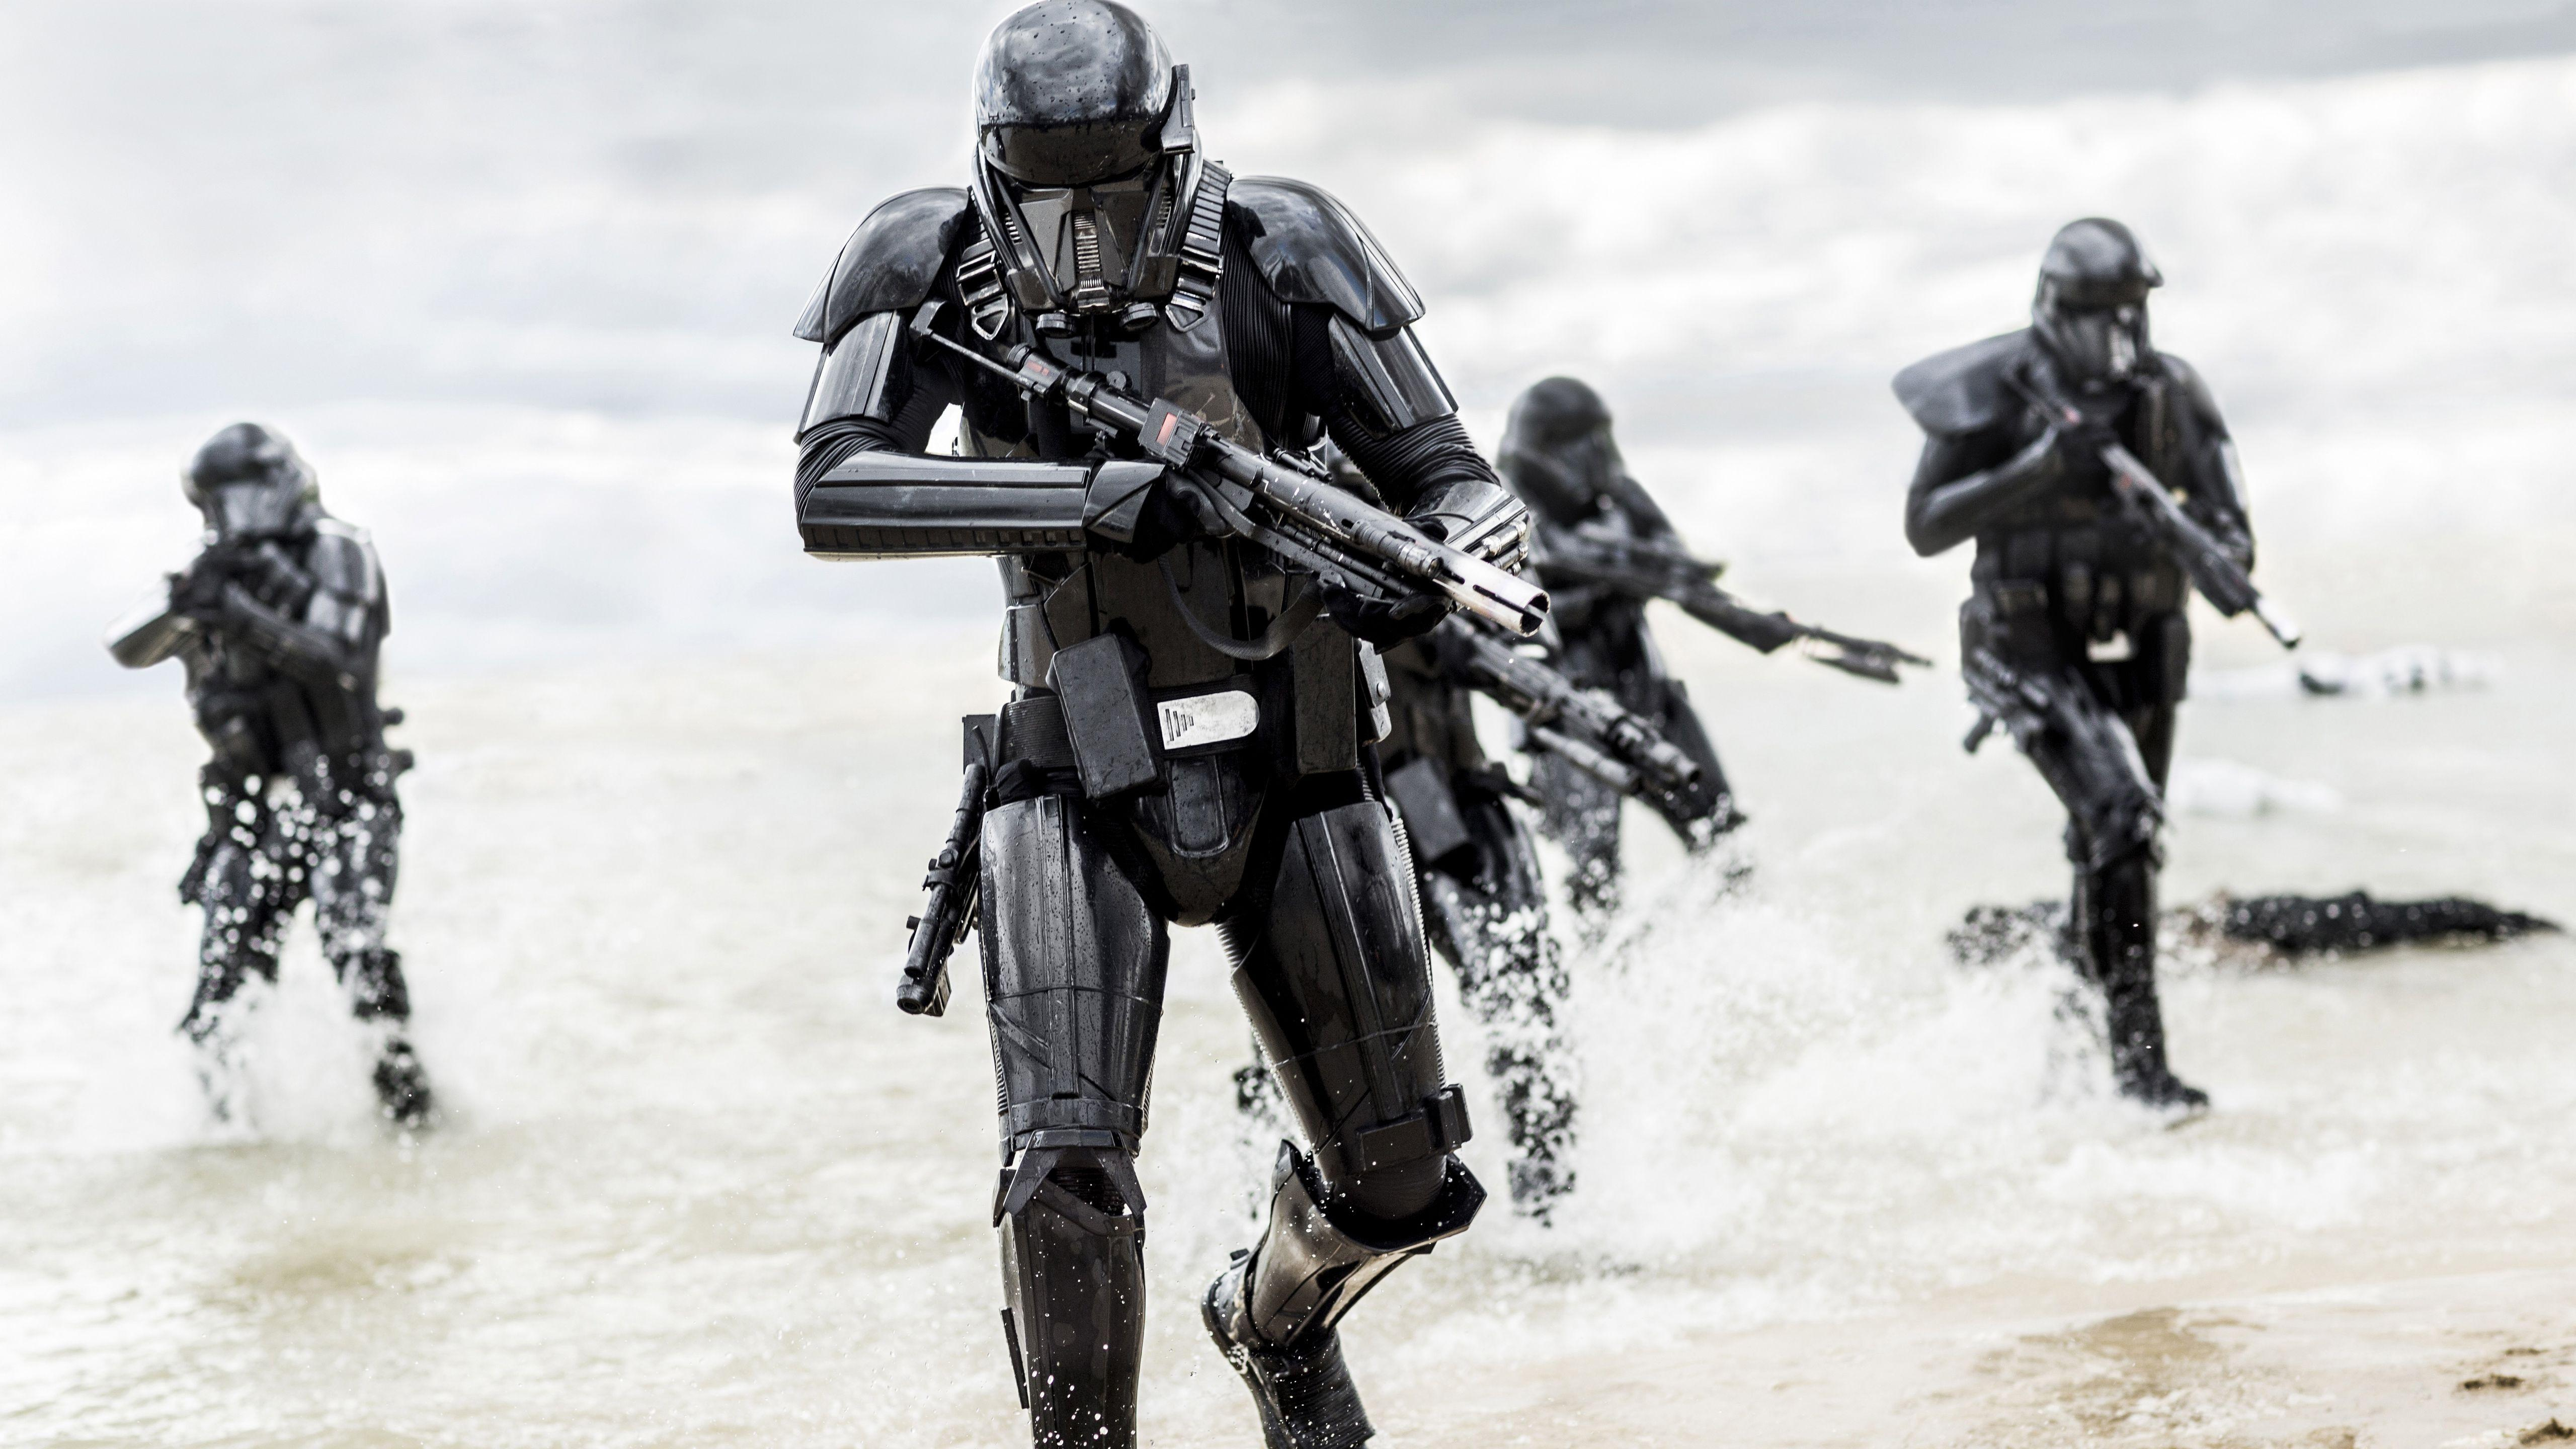 Rogue One A Star Wars Story Stormtroopers Wallpapers | HD Wallpapers